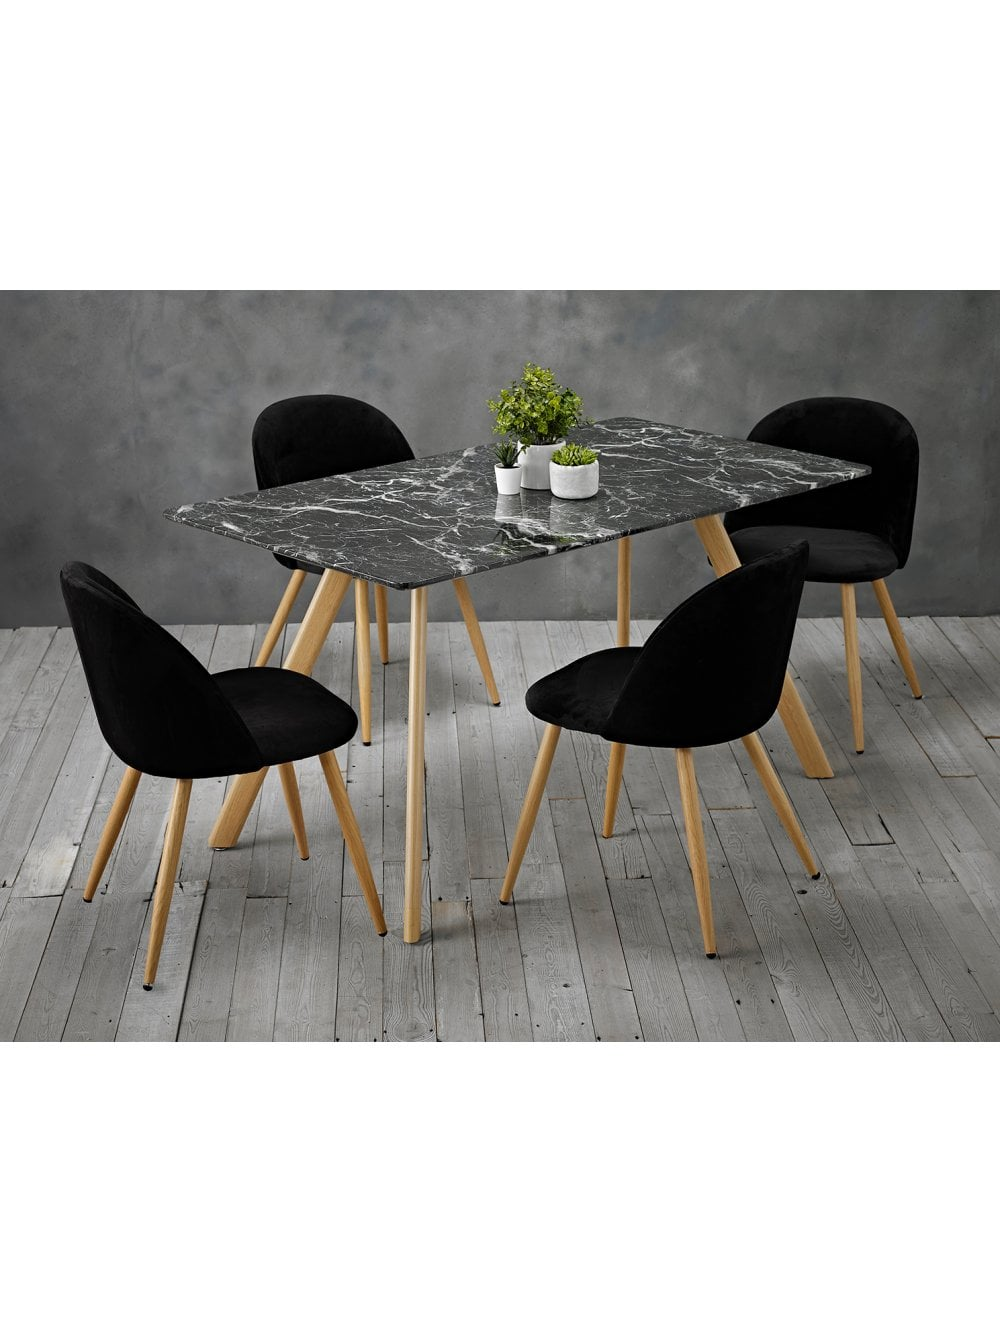 Lpd Furniture Venice Black Dining Table Marble Effect Furniture From The Posh Door Company Uk